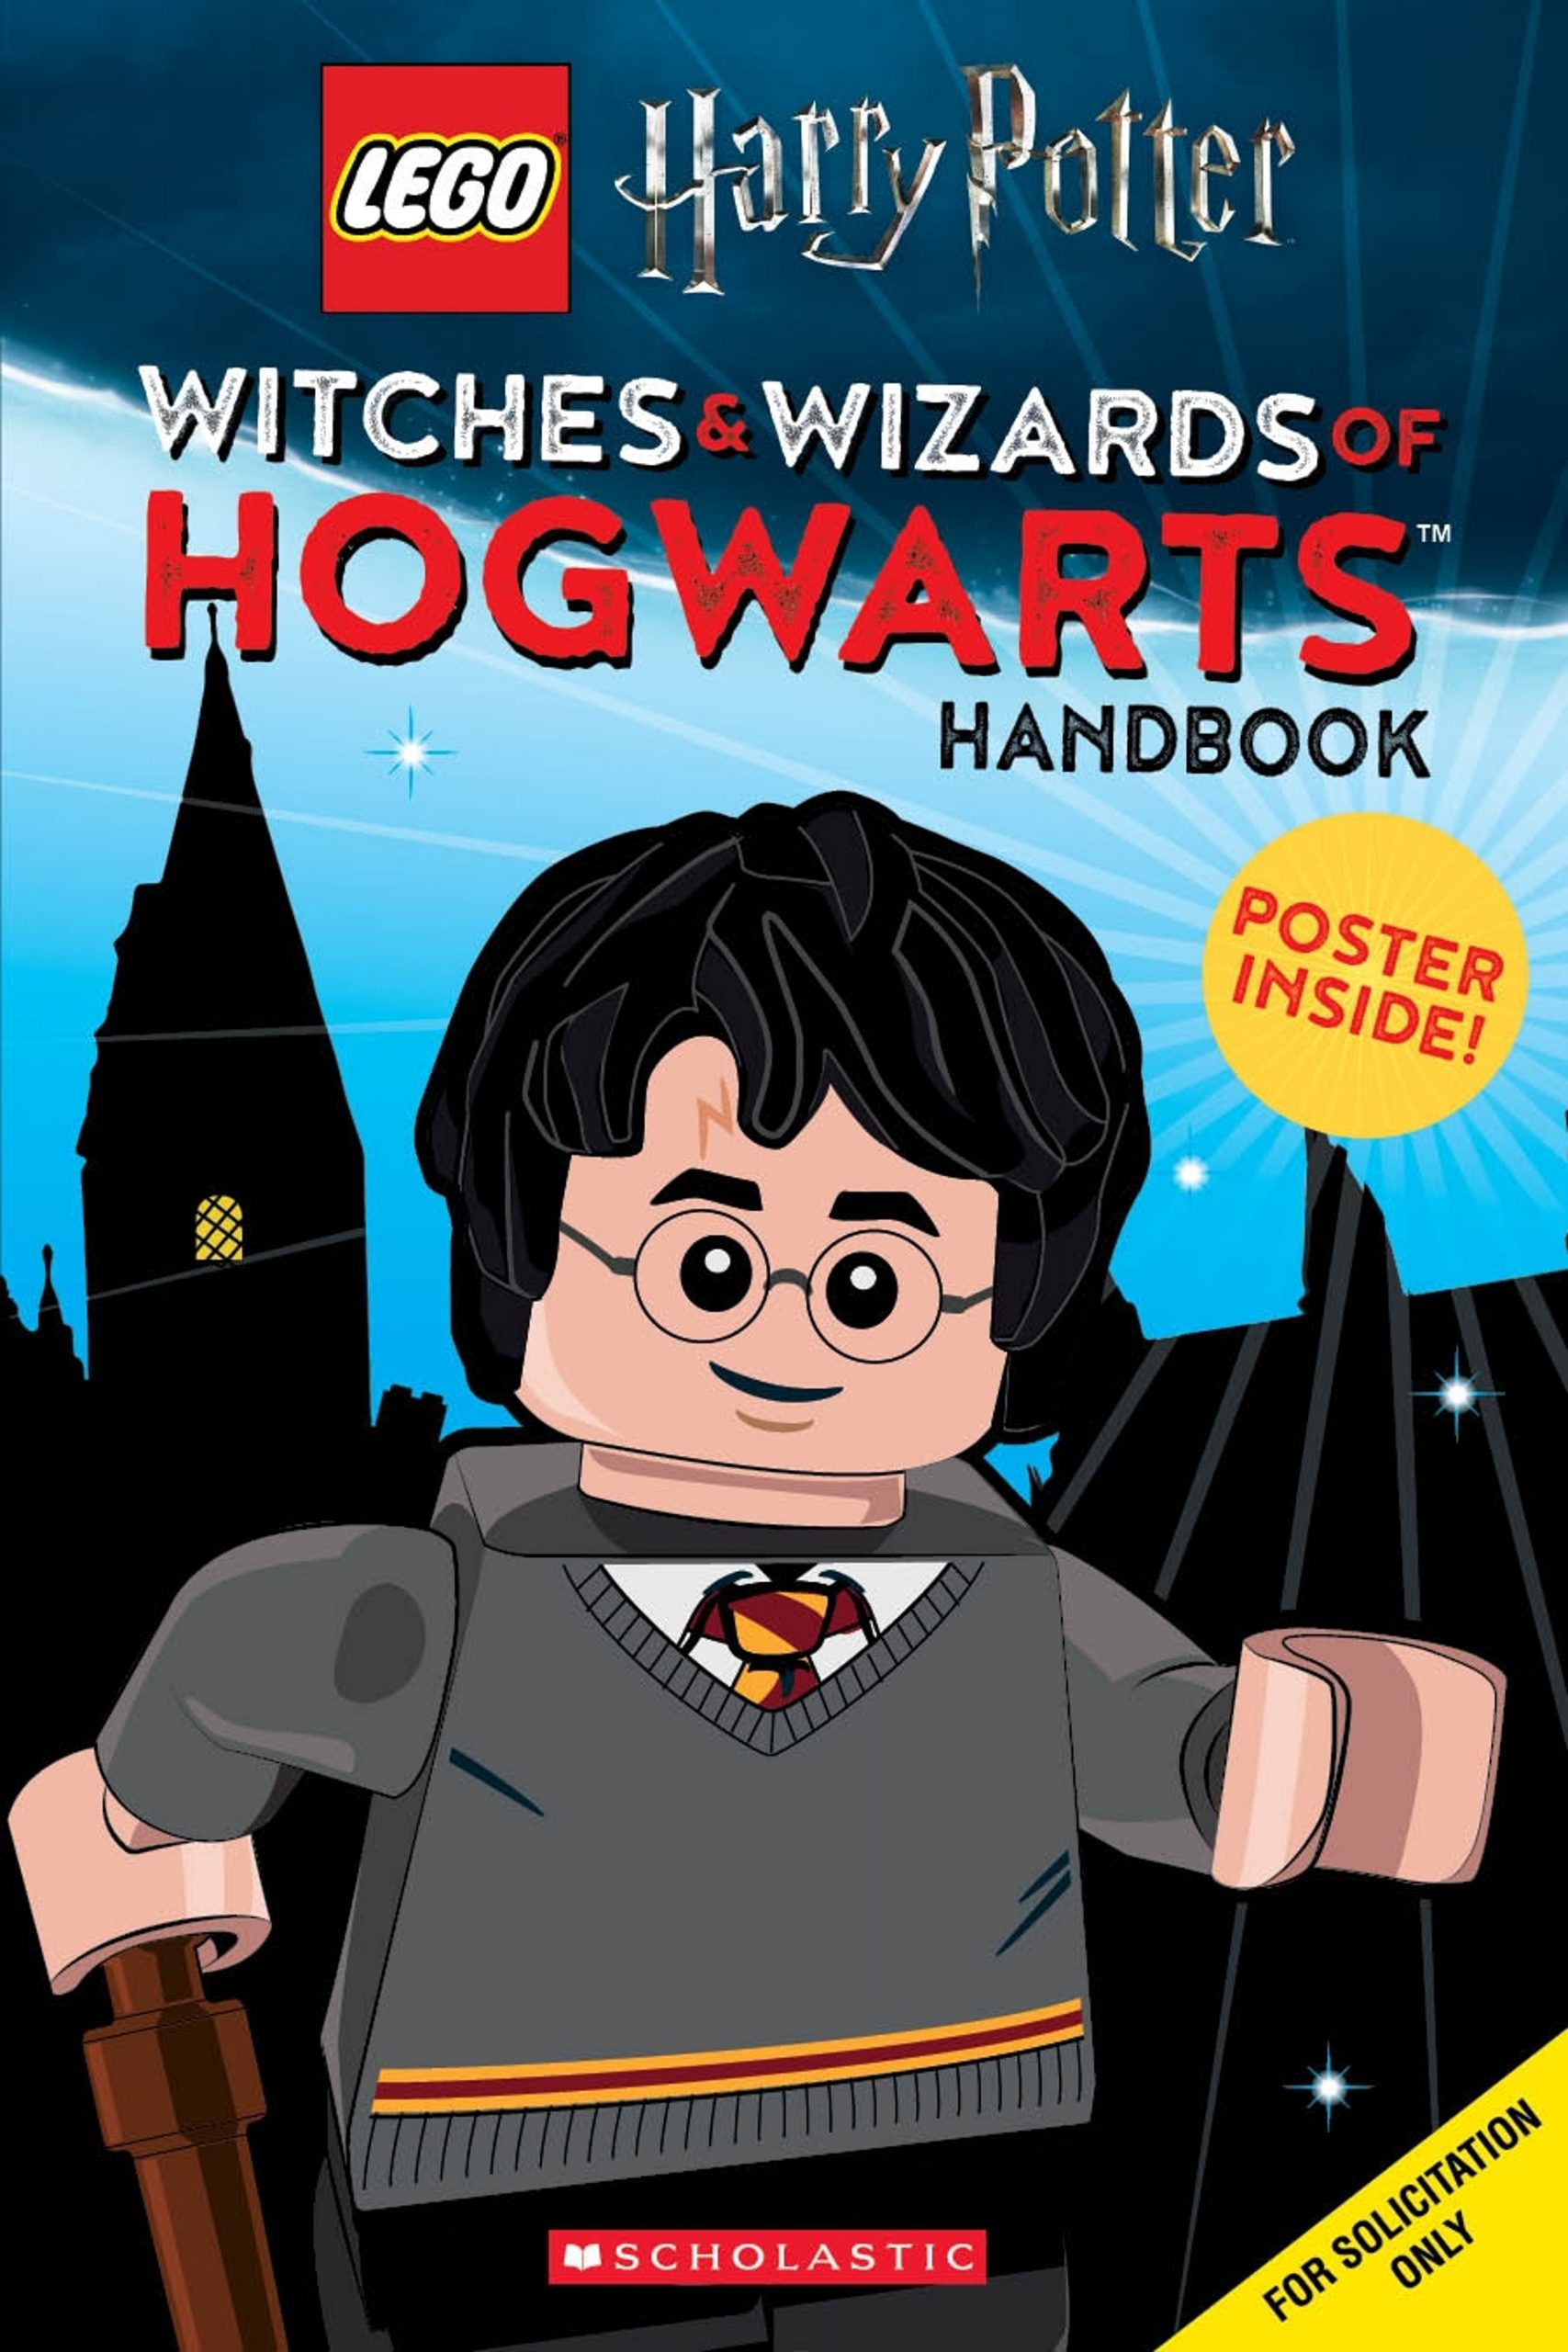 lego 5005678 harry potter witches and wizards character handbook scaled